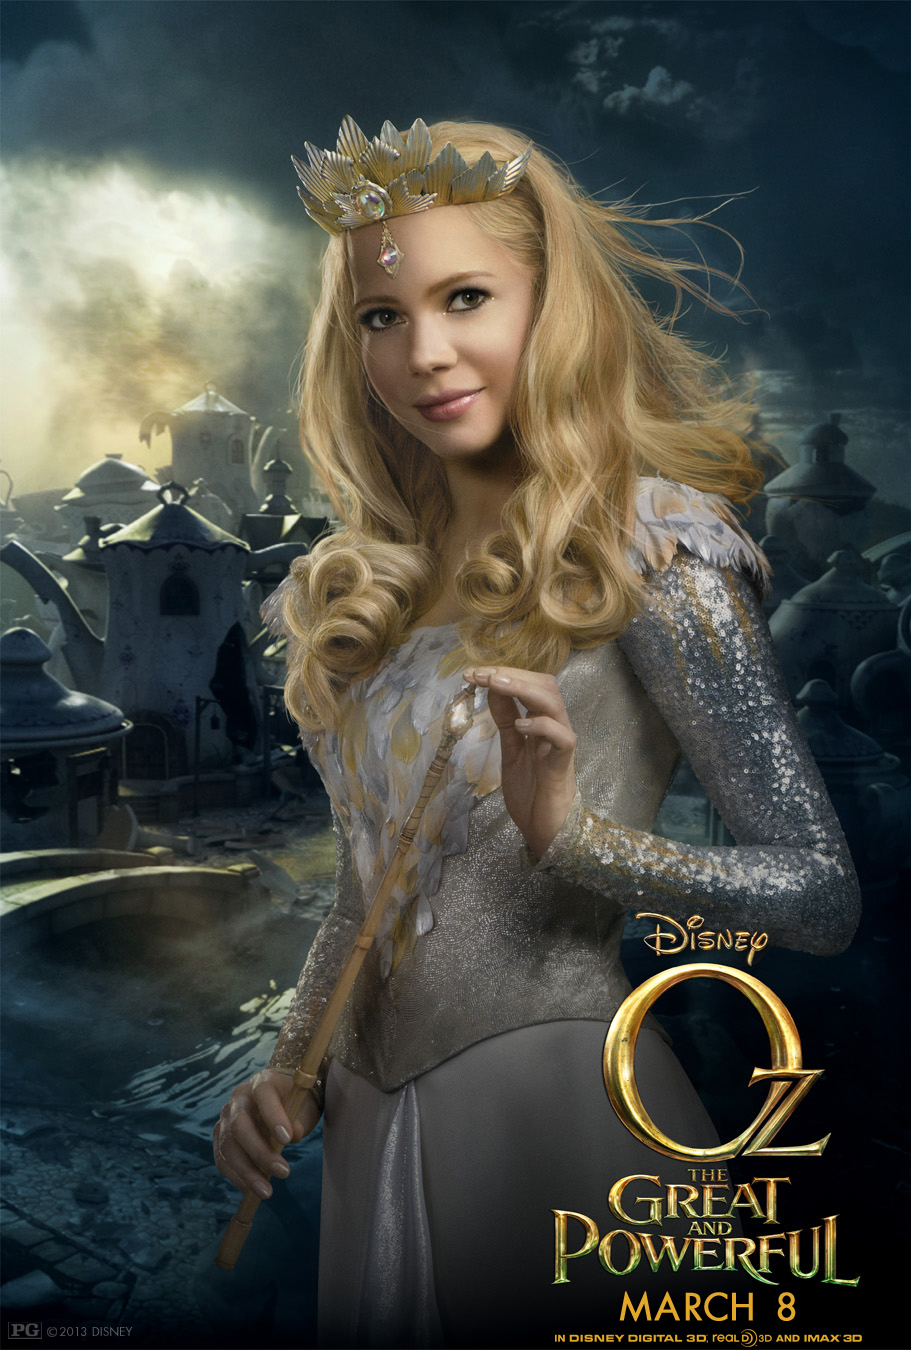 Disney – Oz the Great and Powerful